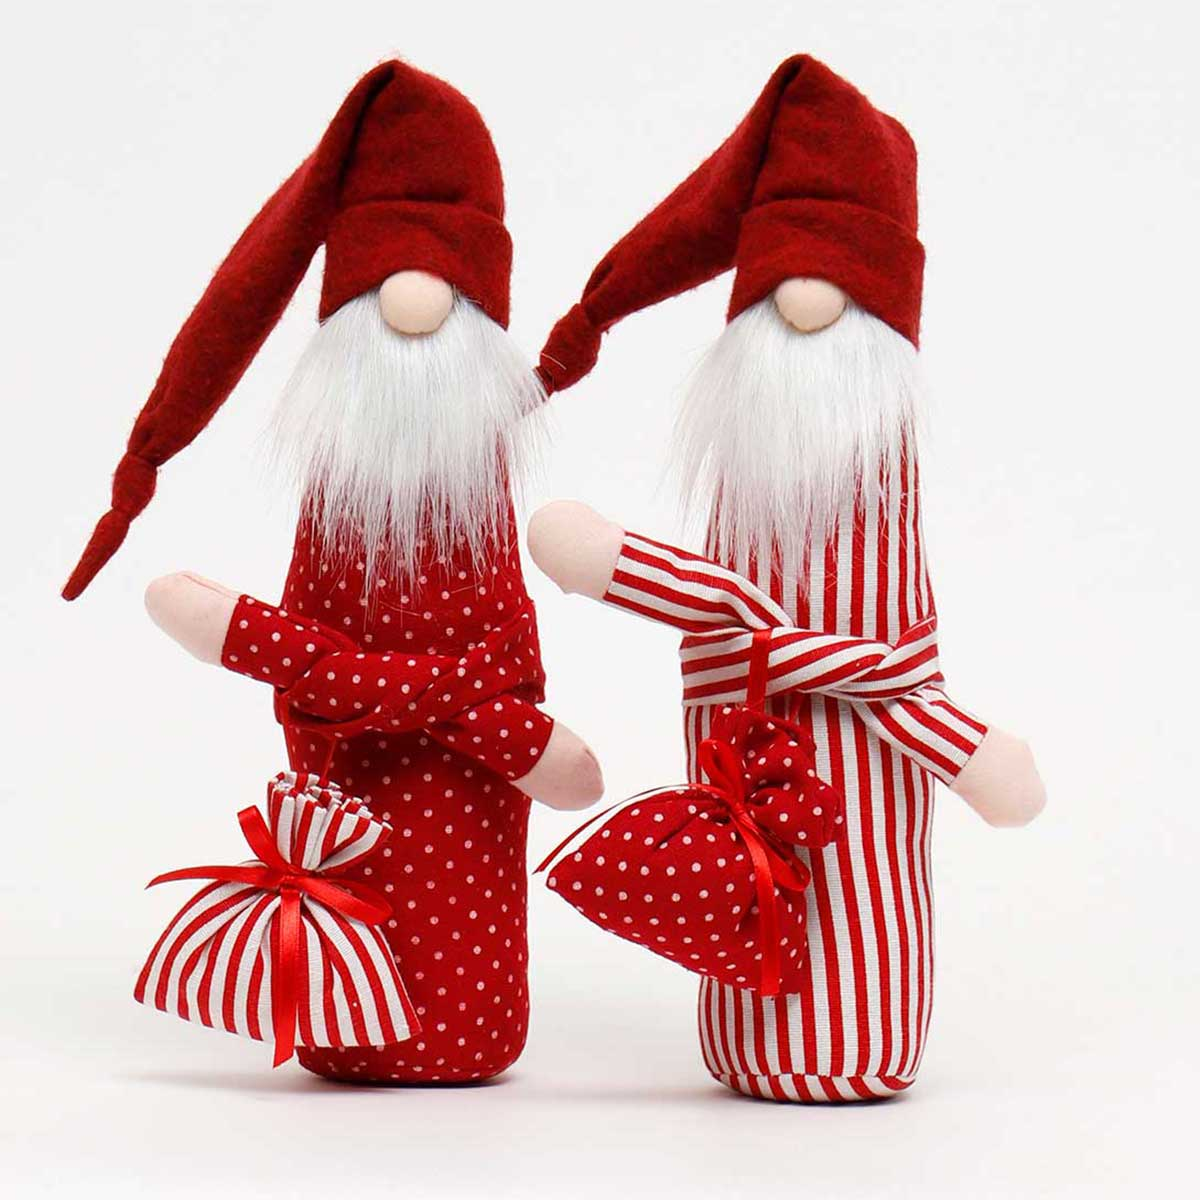 RED SLEEPY SANTA WITH BAG 2 ASSORTED